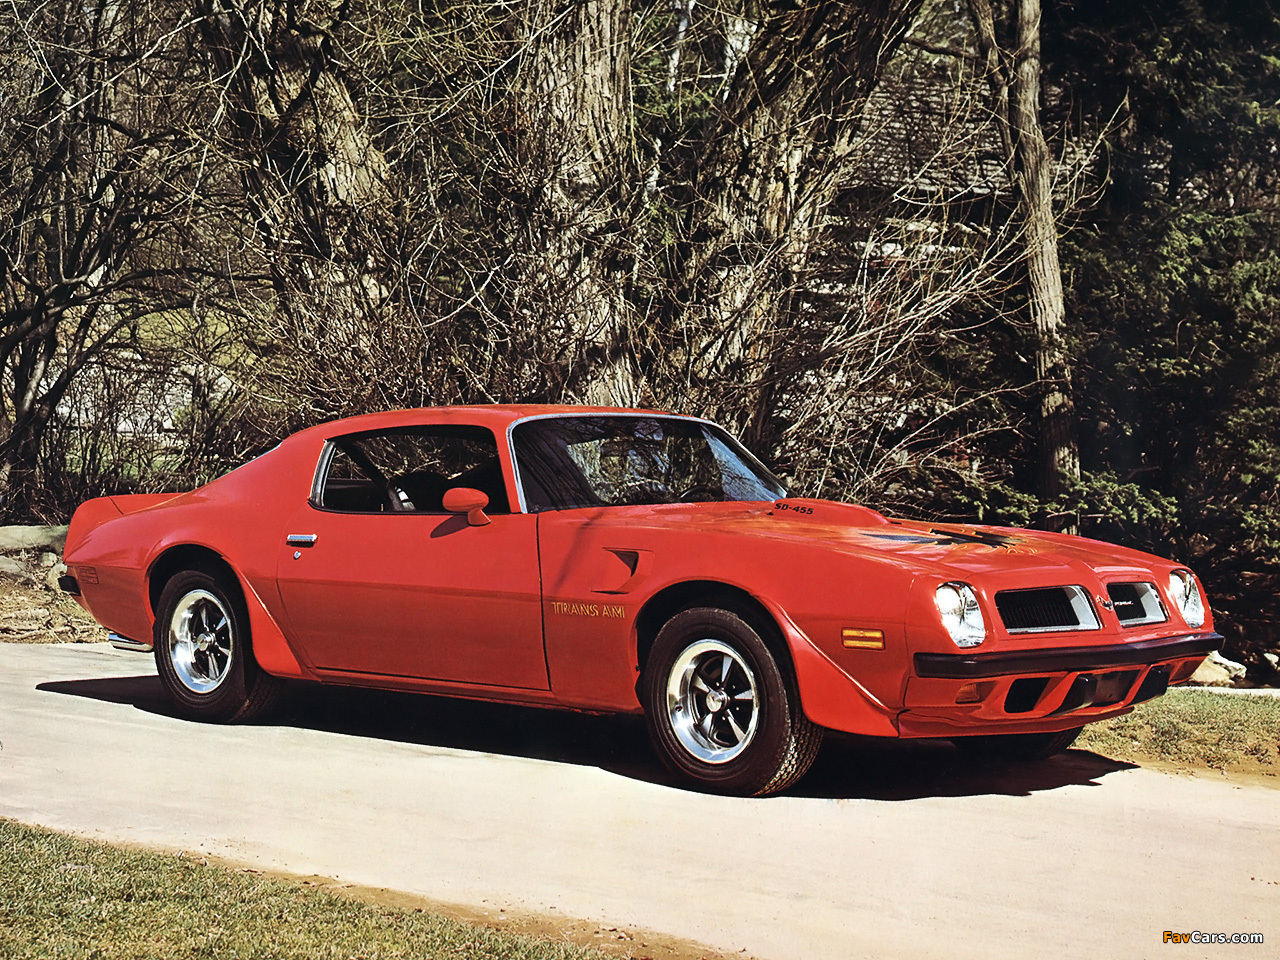 Pontiac Firebird Trans Am 1974 wallpapers (1280 x 960)